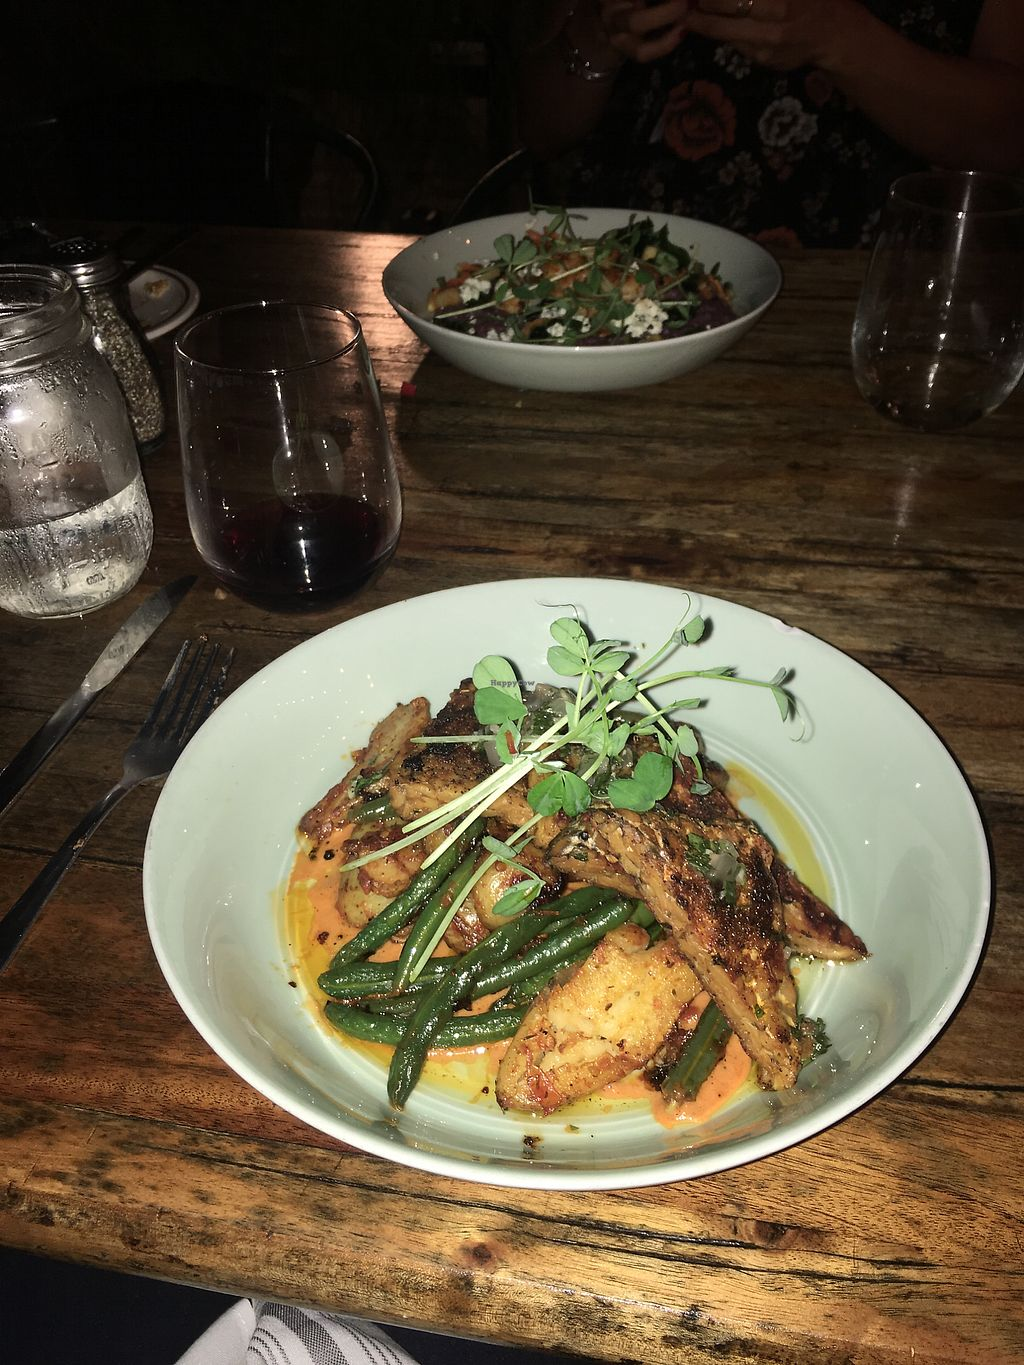 """Photo of The Floridian  by <a href=""""/members/profile/KatieWhite"""">KatieWhite</a> <br/>tempeh with a tomato red pepper type sauce and green beans and fingerling potatoes  <br/> November 7, 2017  - <a href='/contact/abuse/image/24977/322800'>Report</a>"""